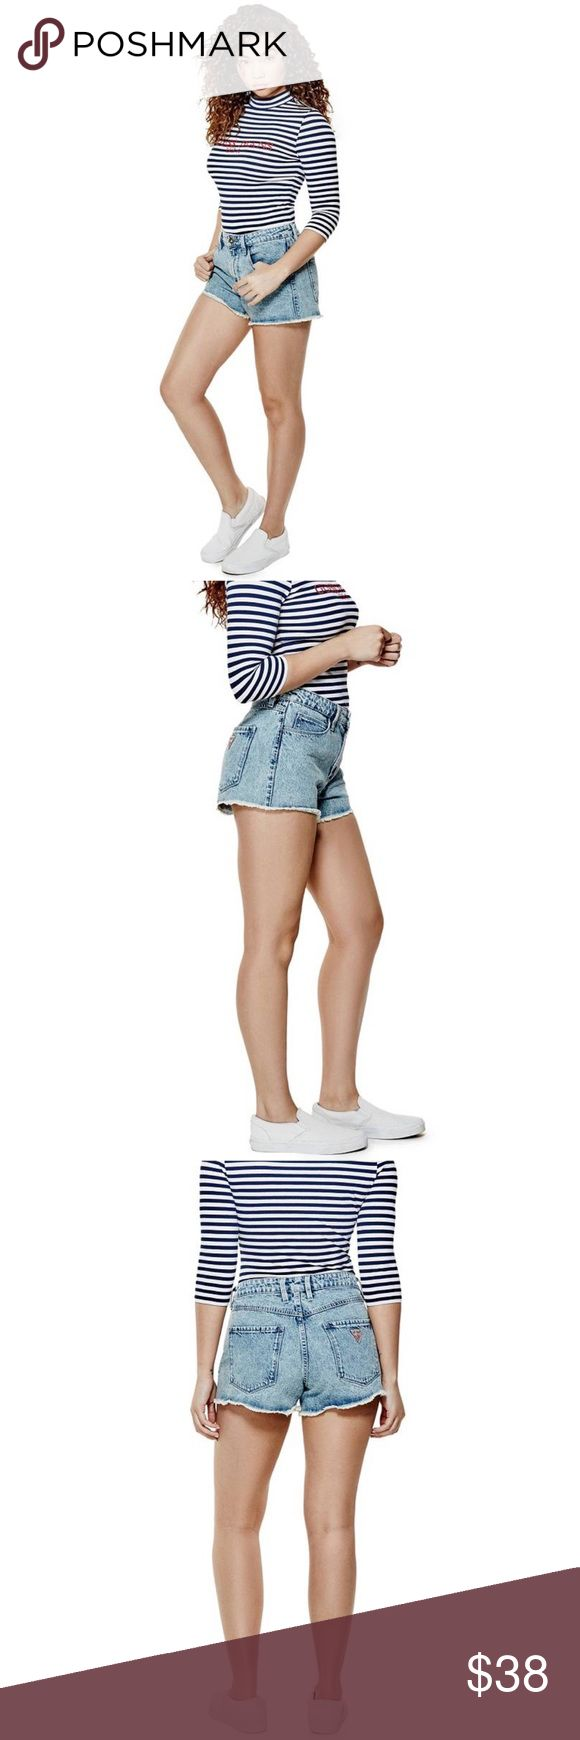 """NWT Guess x A$AP Rocky High Rise Acid Wash Cutoffs Guess 1981 high-rise denim cutoff shorts in '90s acid wash  GUESS Originals x A$AP Rocky Collection  Channel that iconic '90s look with these sexy cutoffs. The ultra-high rise sits at your natural waist and an allover acid wash gives this pair an authentic vintage vibe.  Size 27 10"""" high front rise, 14.25"""" back rise, sits at natural waist. 2.75"""" inseam. 14.5"""" waist  FABRIC: 13 oz. heavyweight non-stretch denim. 100% Cotton. Machine wash  New…"""